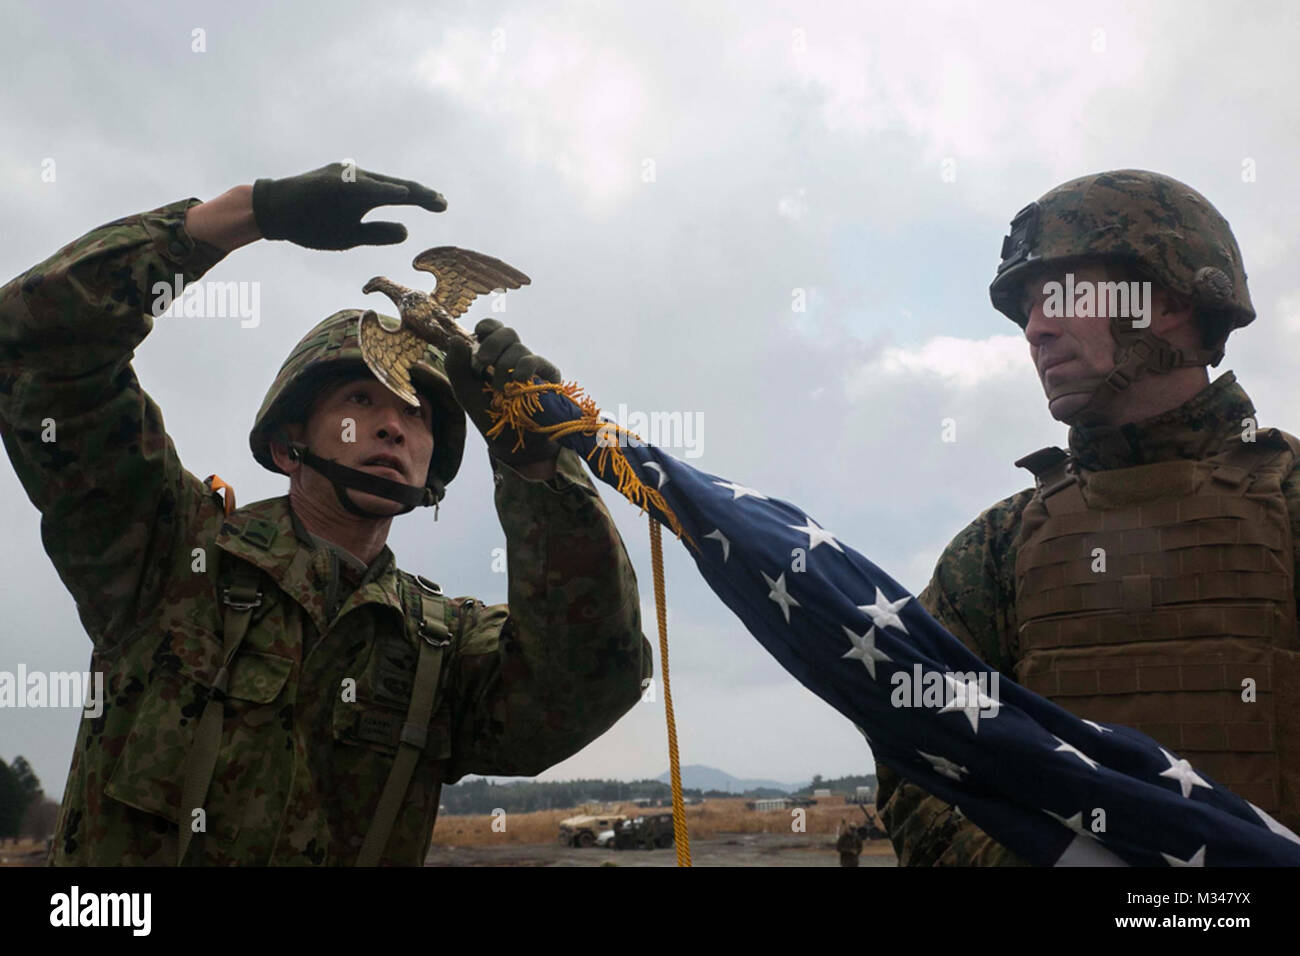 Japan Ground Self-Defense Force Sgt. 1st Class Yatsuka Ikeda, left, helps U.S. Marine 1st Sgt. Timothy Babcock set Stock Photo